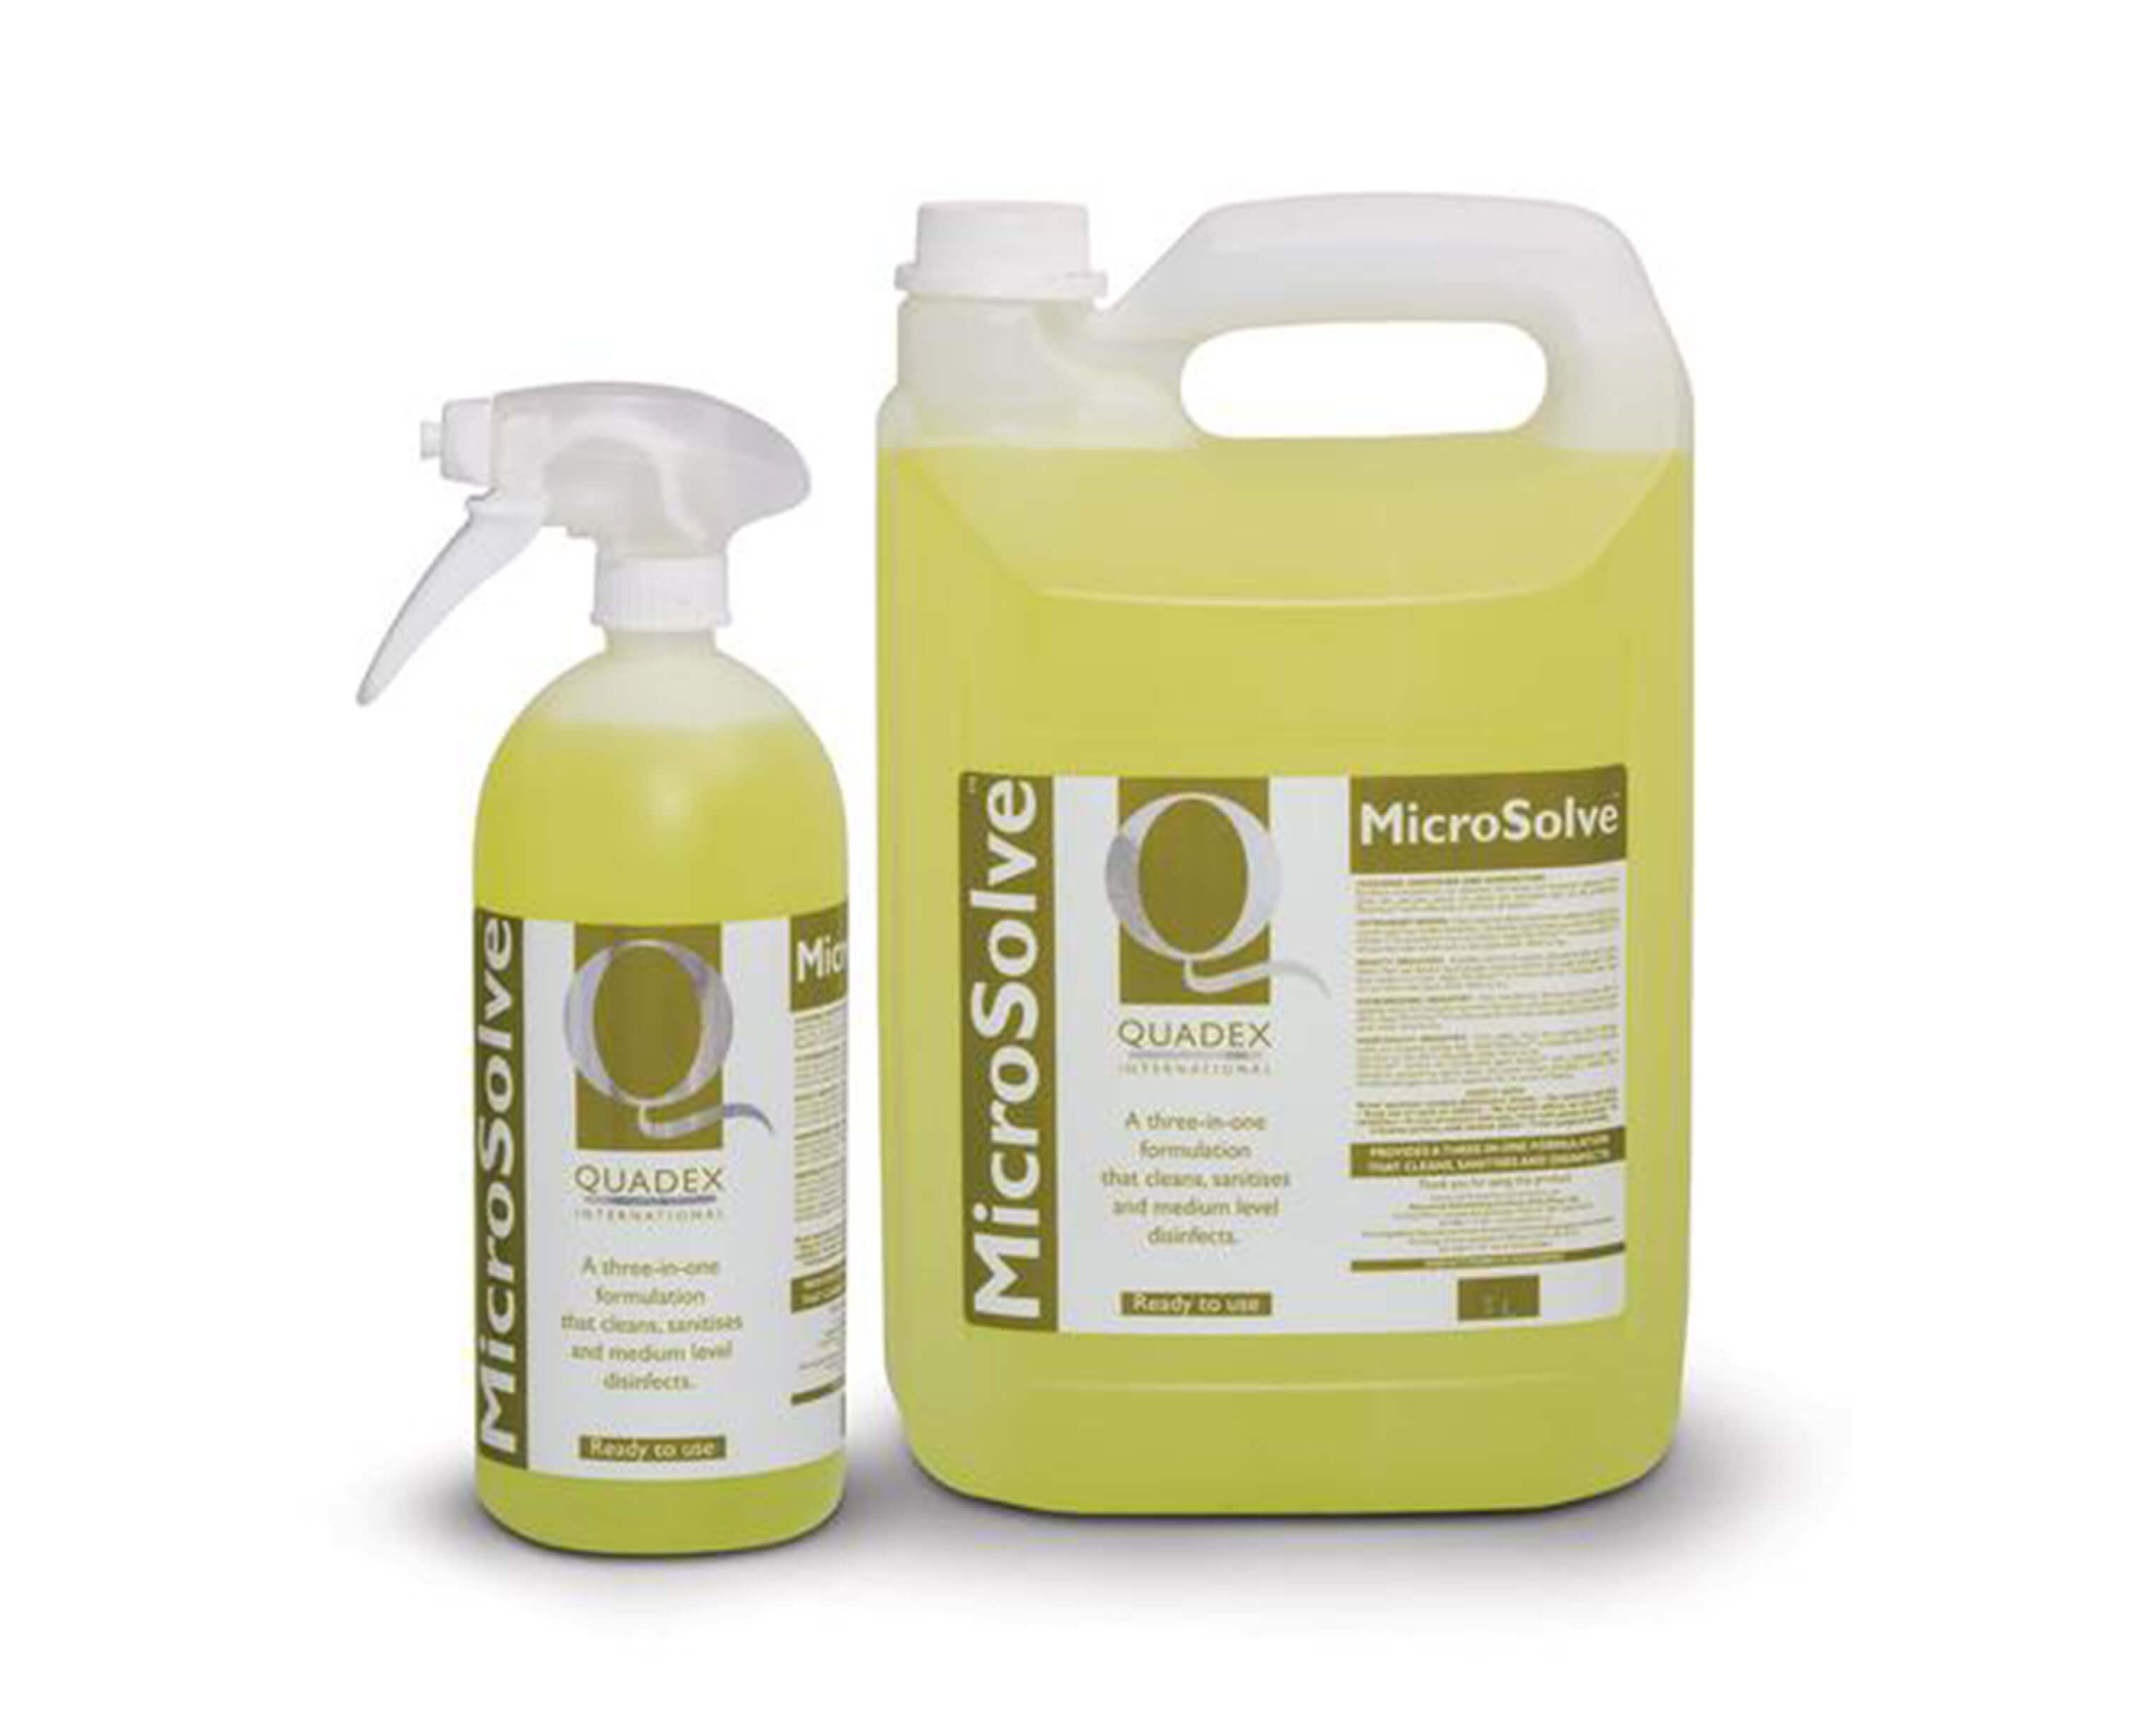 Microsolve - CLEANS, SANITISES & DISINFECTS IN ONE.